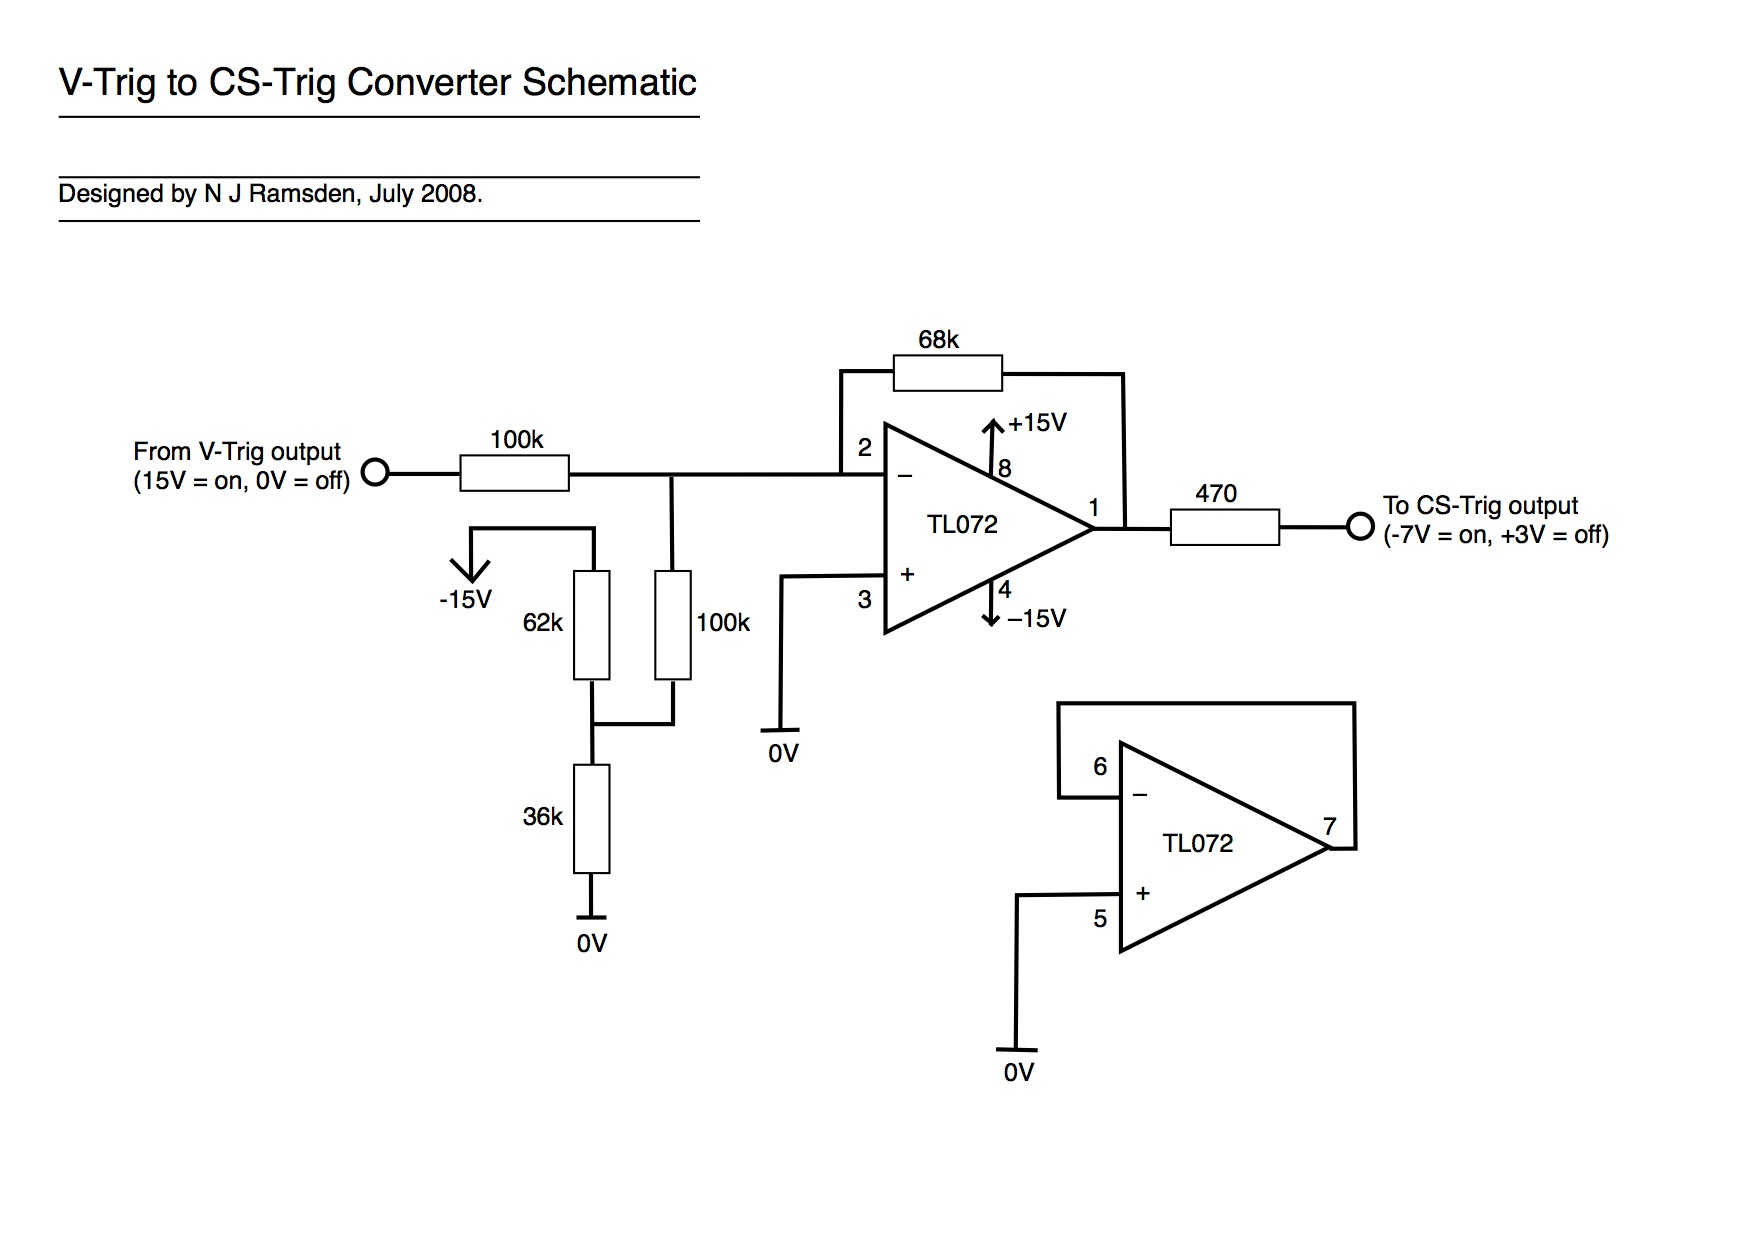 Yamaha Cs5 Wiring Diagram Not Lossing 2008 Outboard Cs Trigger Input Modification Synthnerd Rh Wordpress Com Ignition